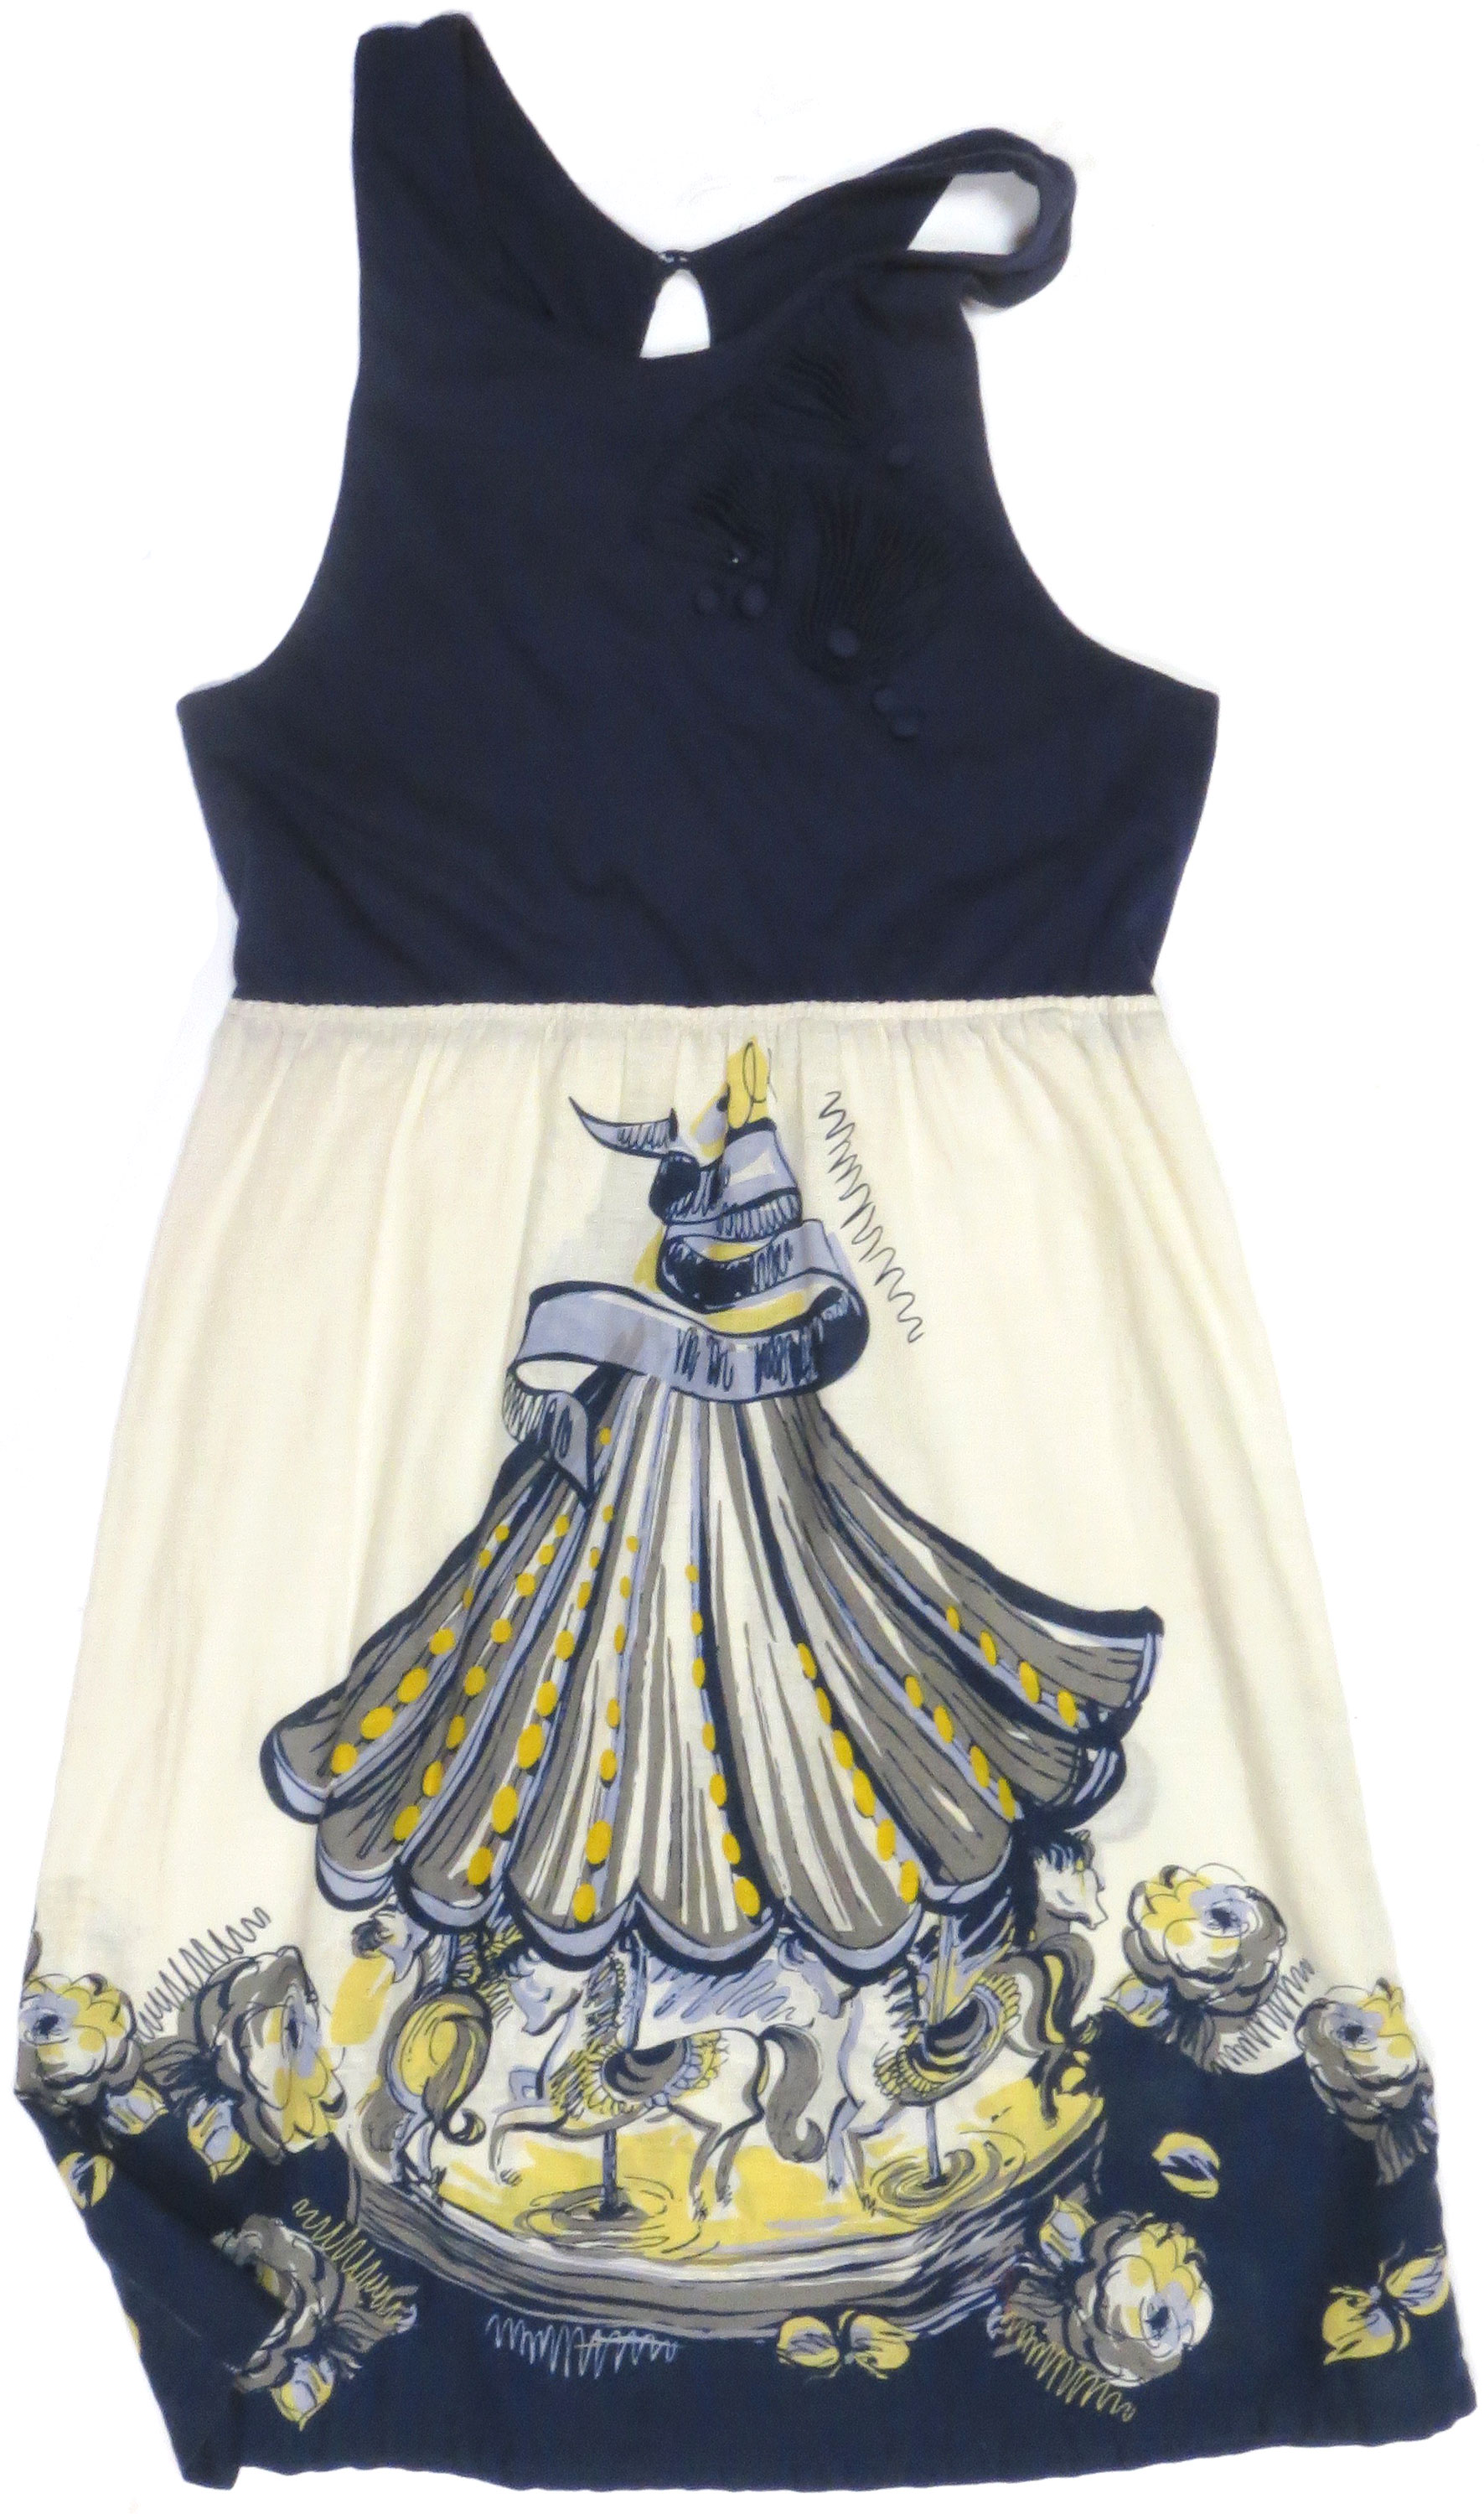 Carousel Tank Dress